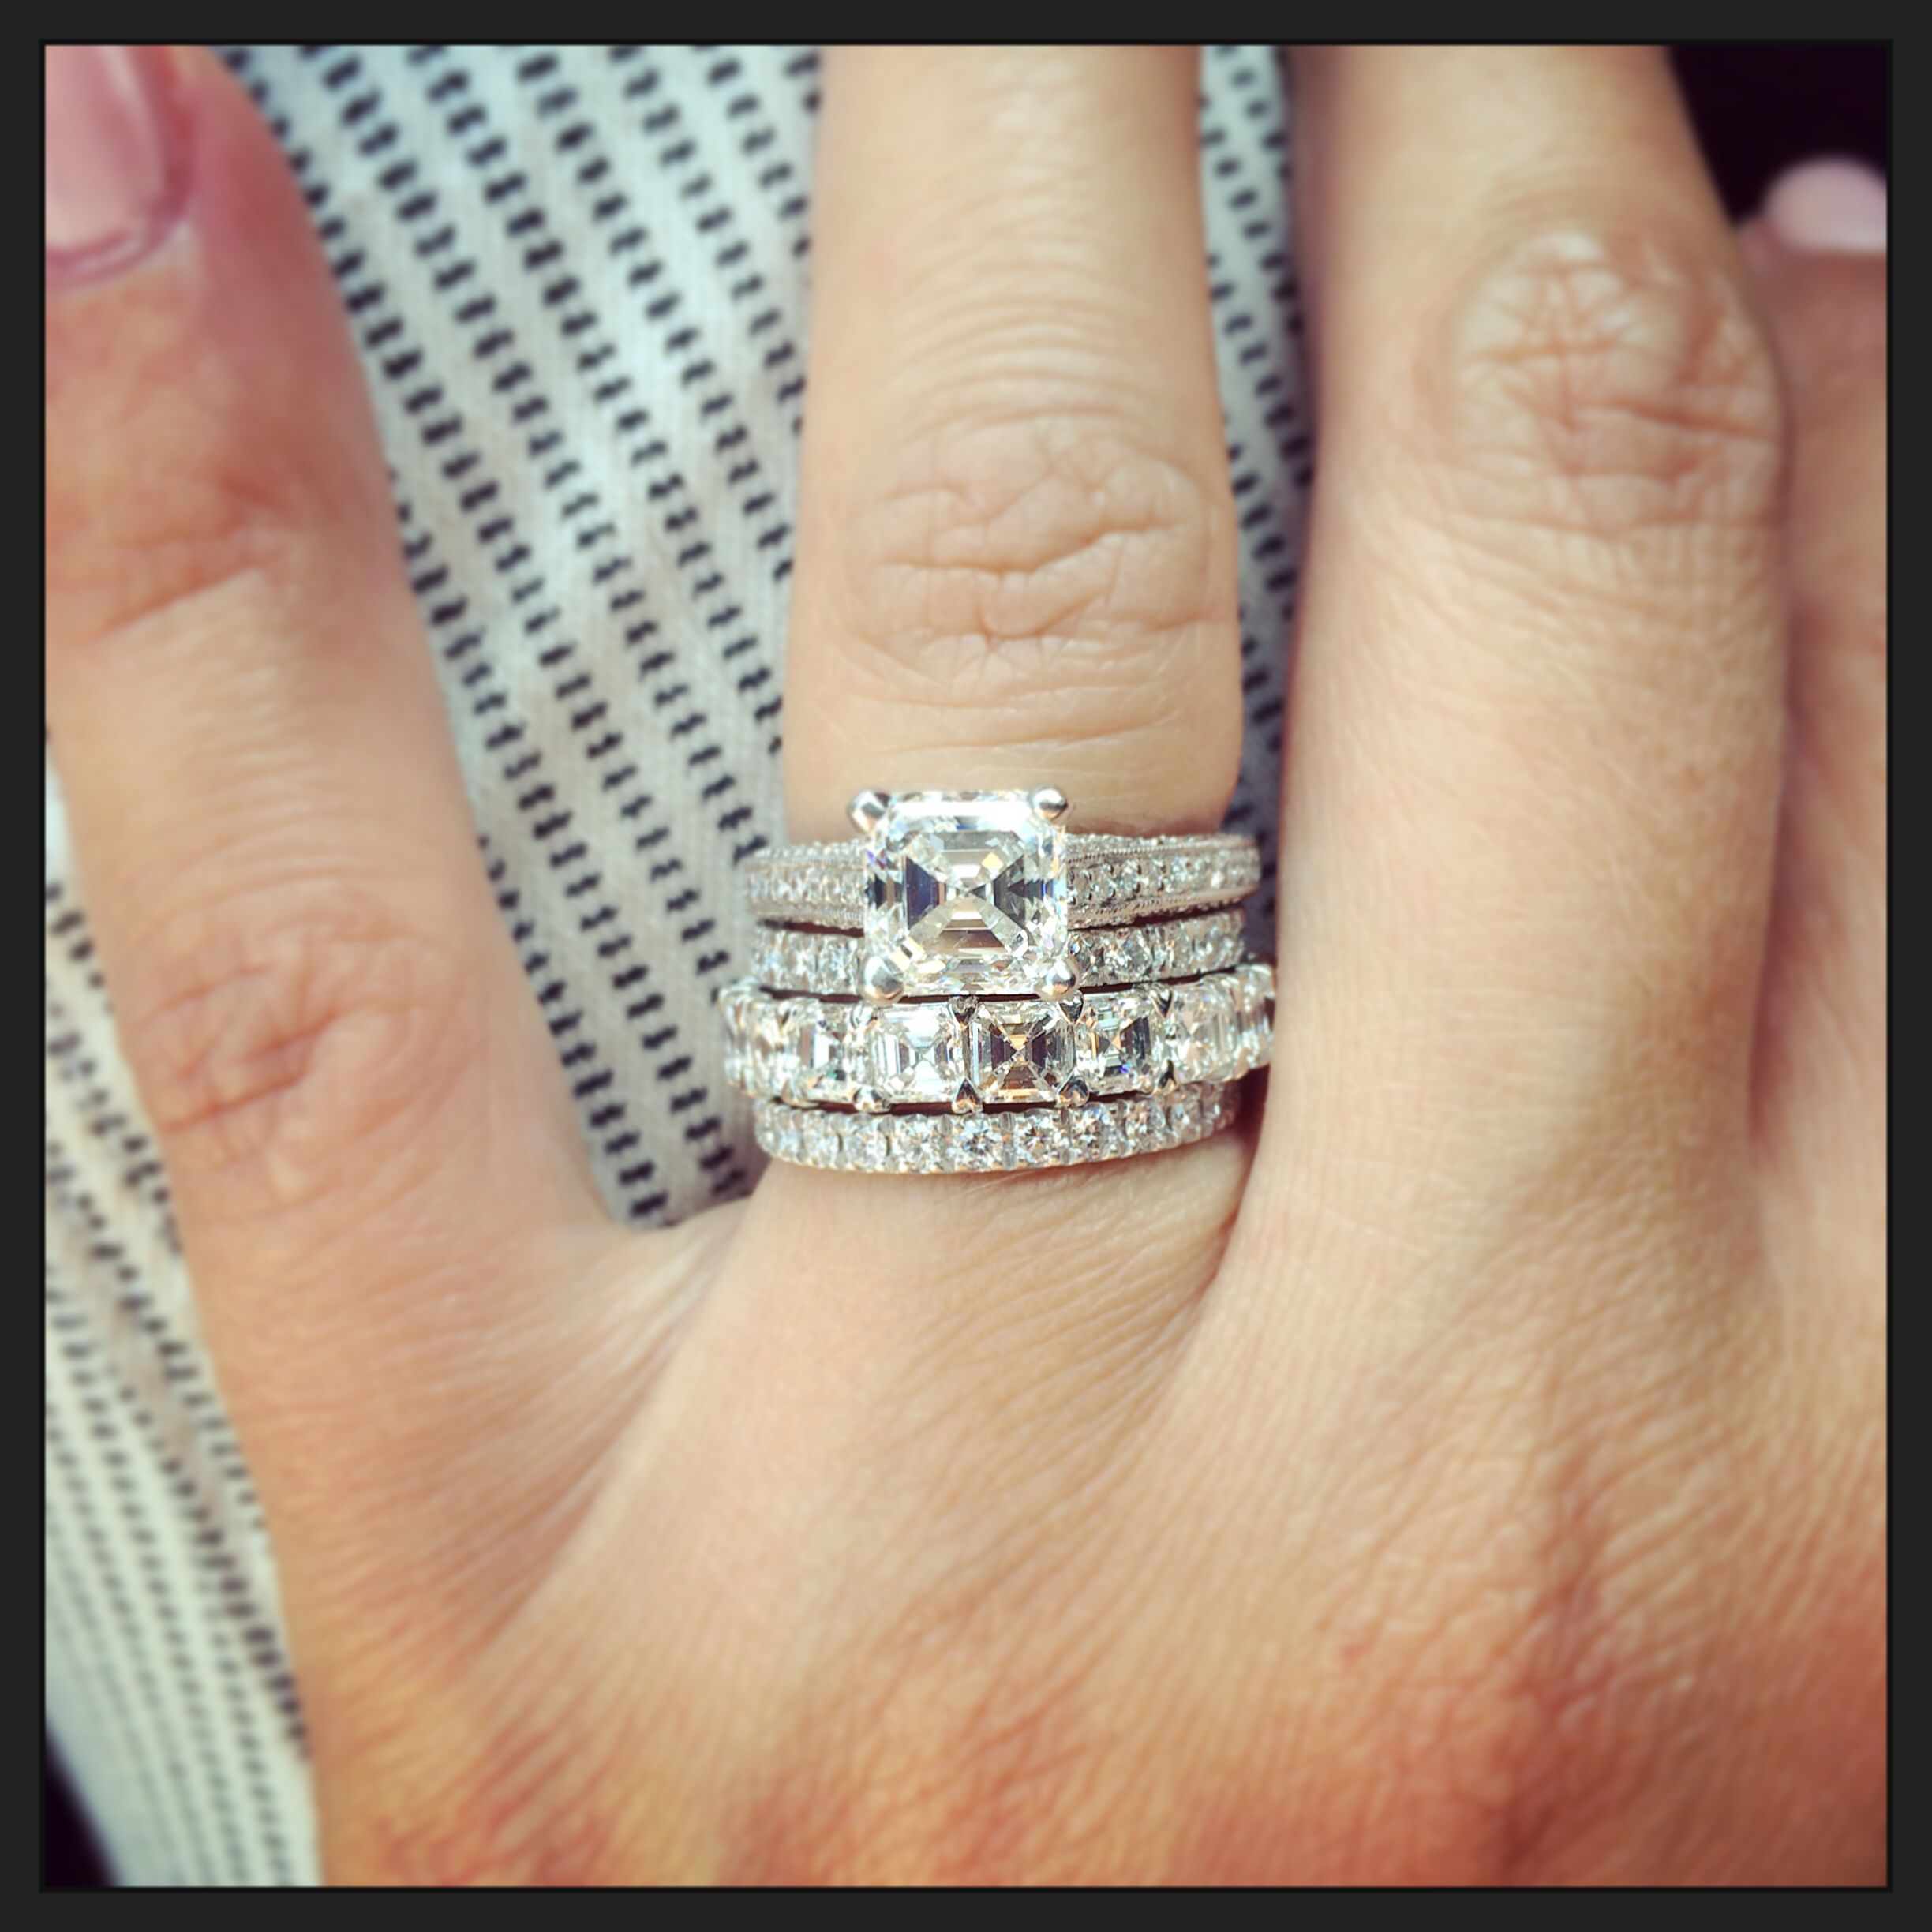 per diamond rings cut and desires halo danhov products lei asscher band with by engagement ring view mikolay